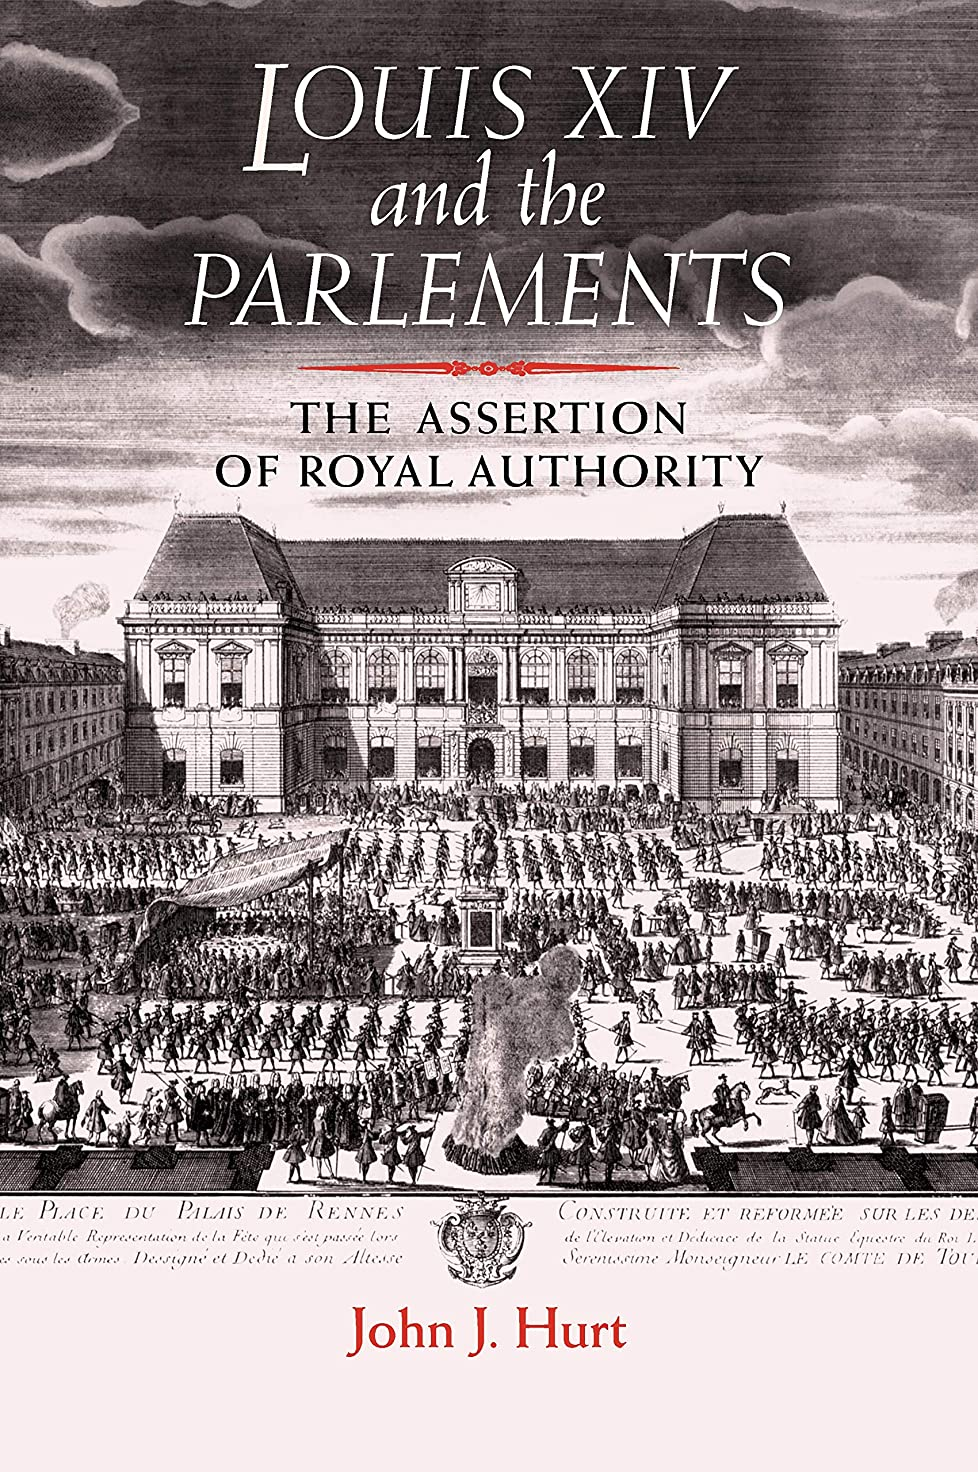 砂のハーフ封筒Louis XIV and the parlements: The assertion of royal authority (English Edition)